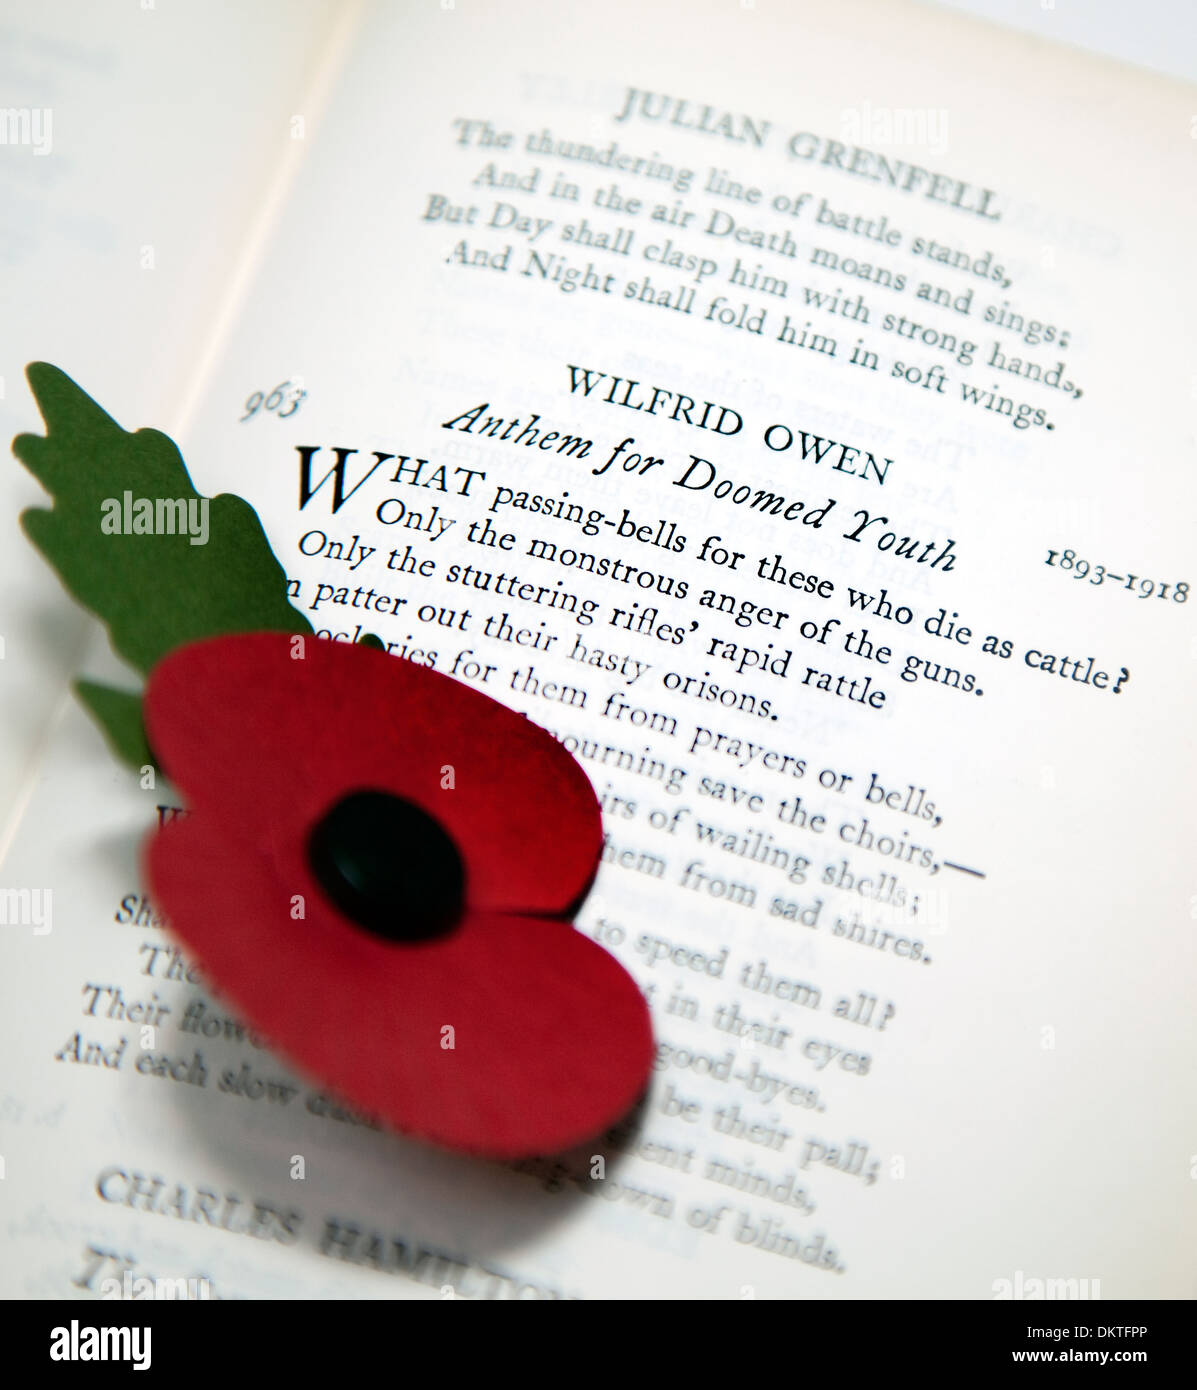 Wilfred Owen Stock Photos Wilfred Owen Stock Images Alamy